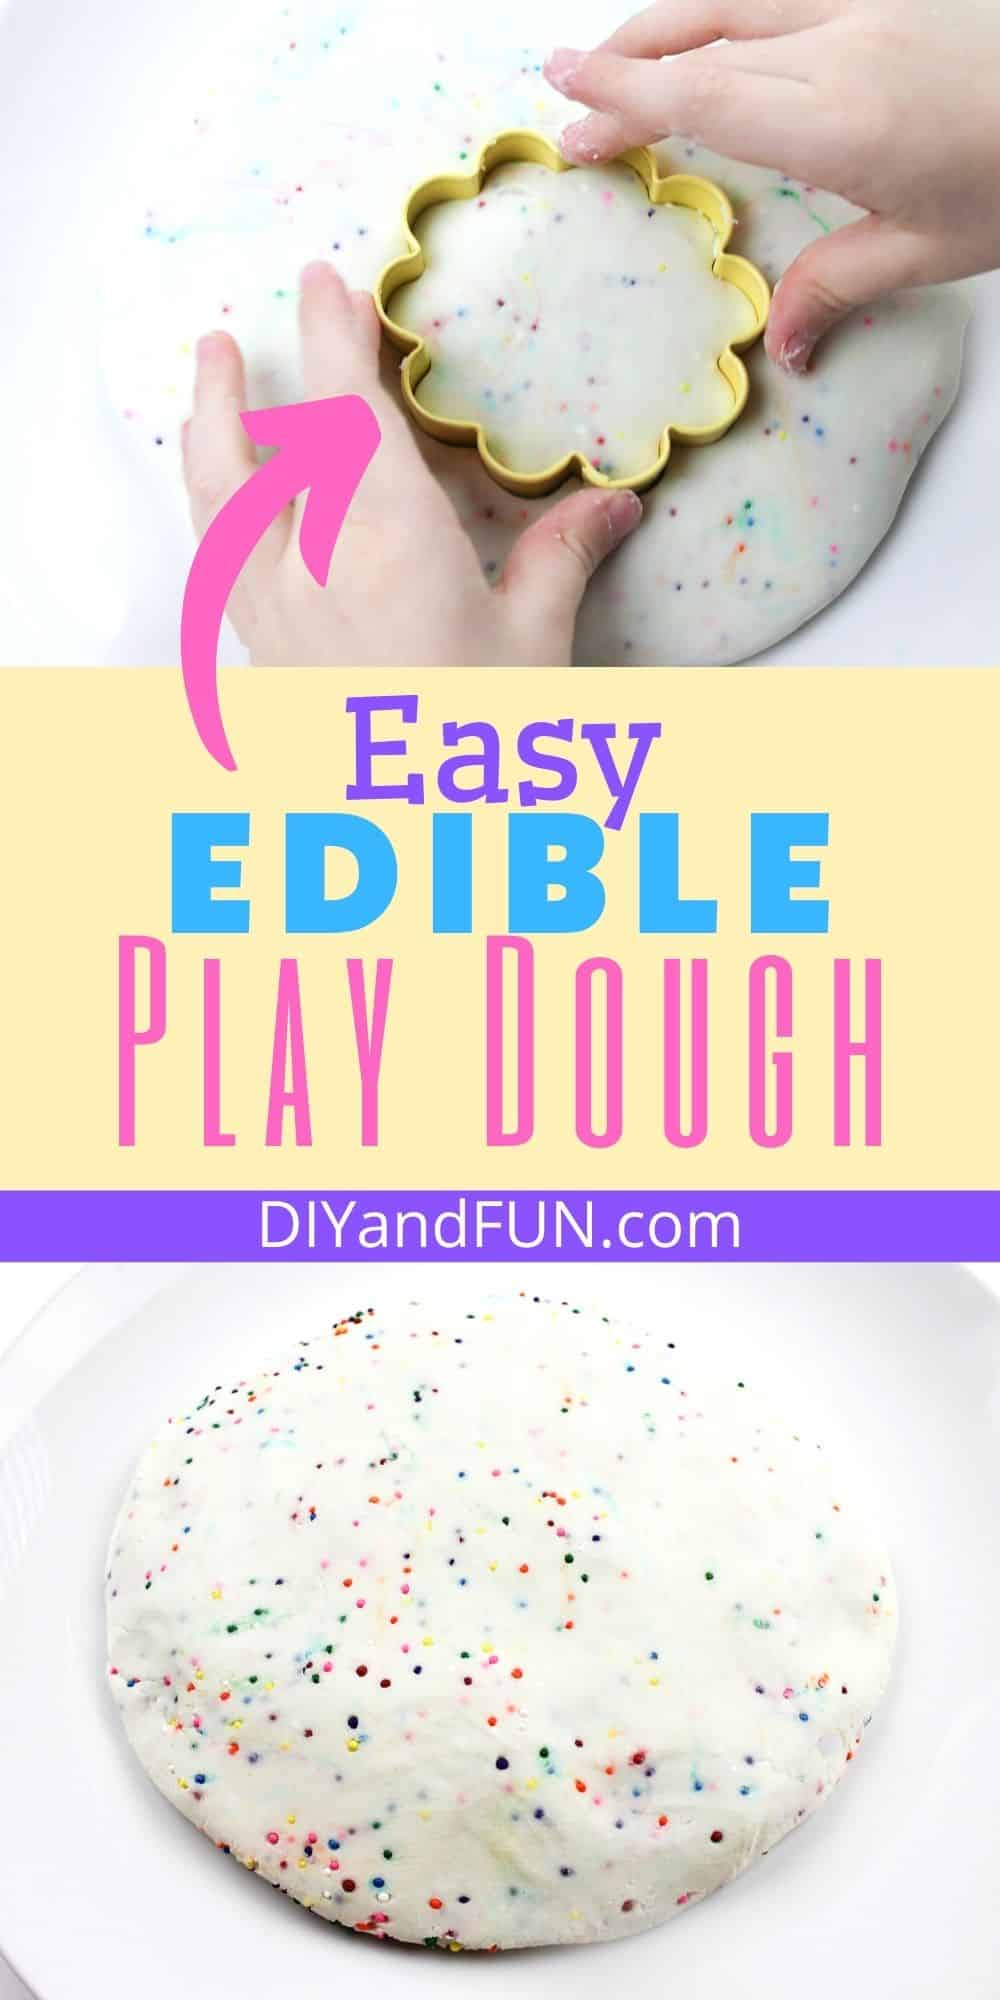 How to Make Edible Play Dough, a simple and tasty recipe for playdough that kids and parents can create with and enjoy.